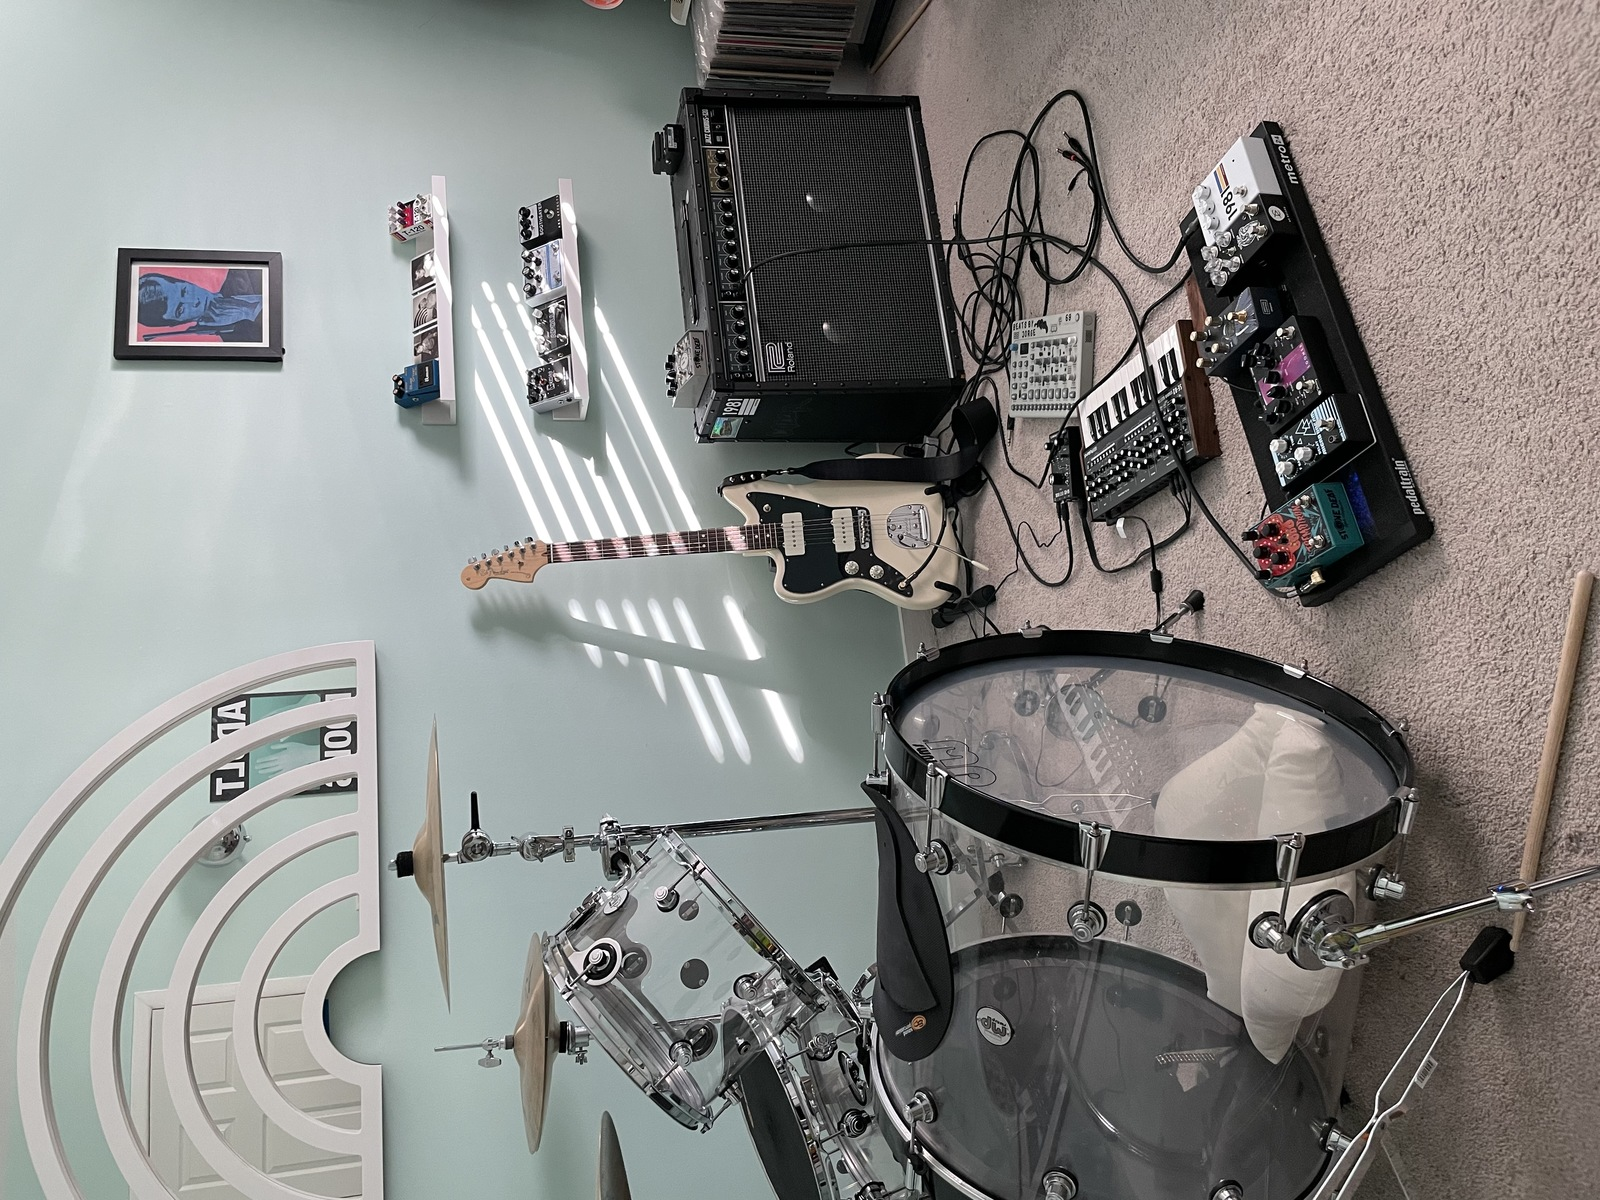 Photo of Roland JC-120 Jazz Chorus and more gear in a pedalboard, Drums, and synths